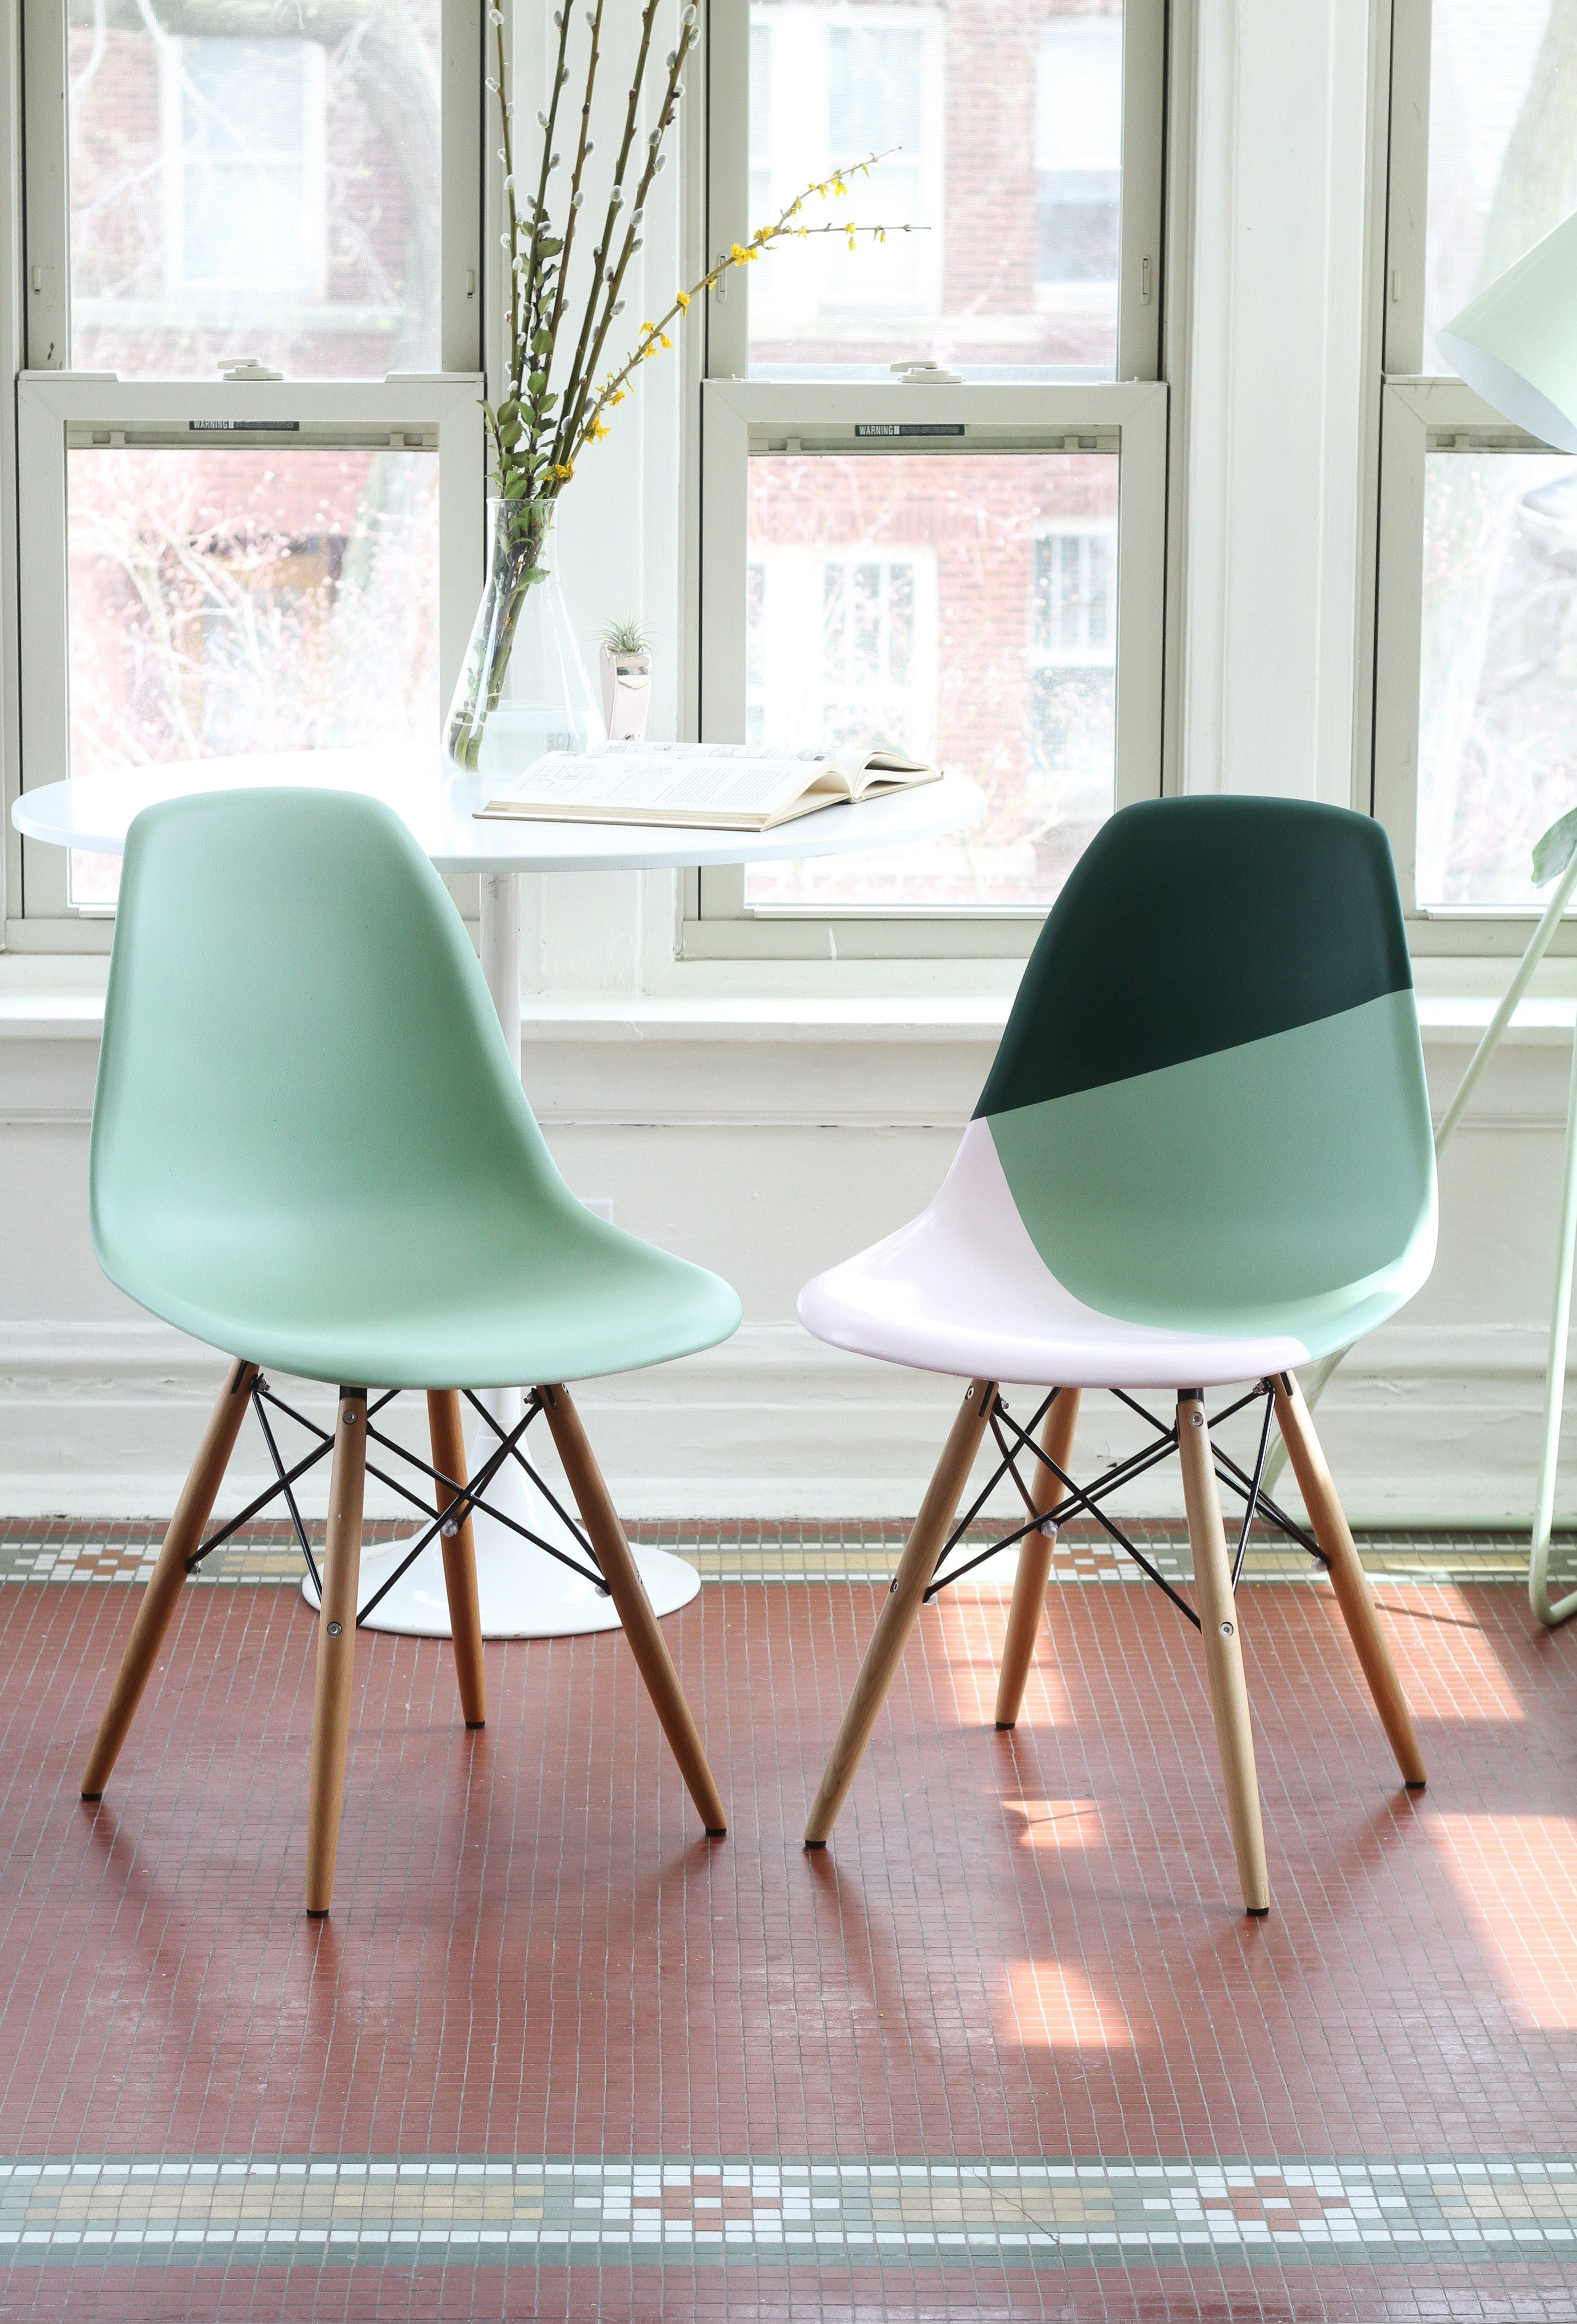 How To Paint Plastic Chairs Chair Cover Rentals Rochester Ny Learn Spray The Right Way Diy Pinterest Apartment Therapy Tutorials